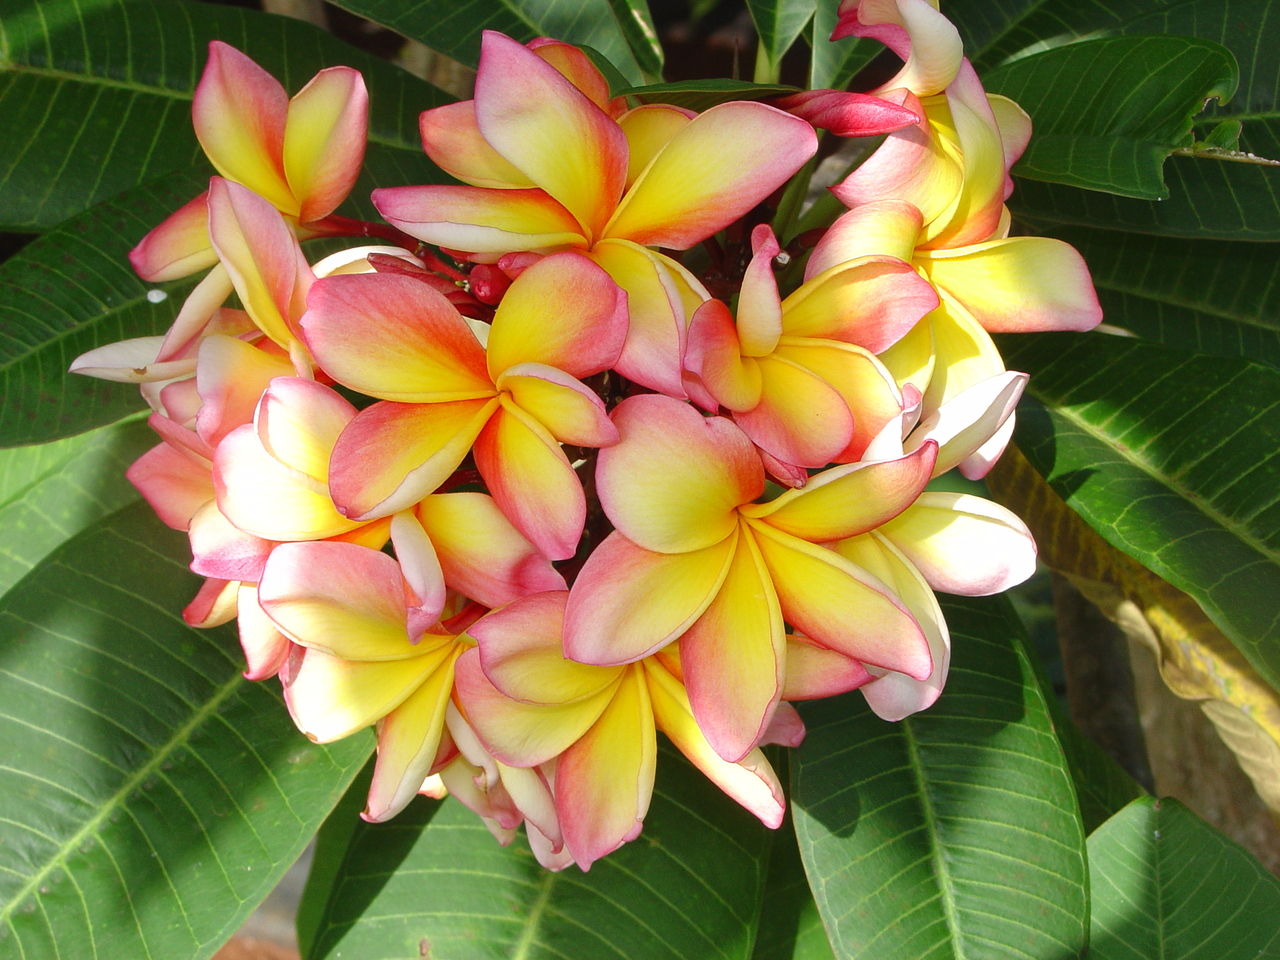 Availability of Confetti Plumeria